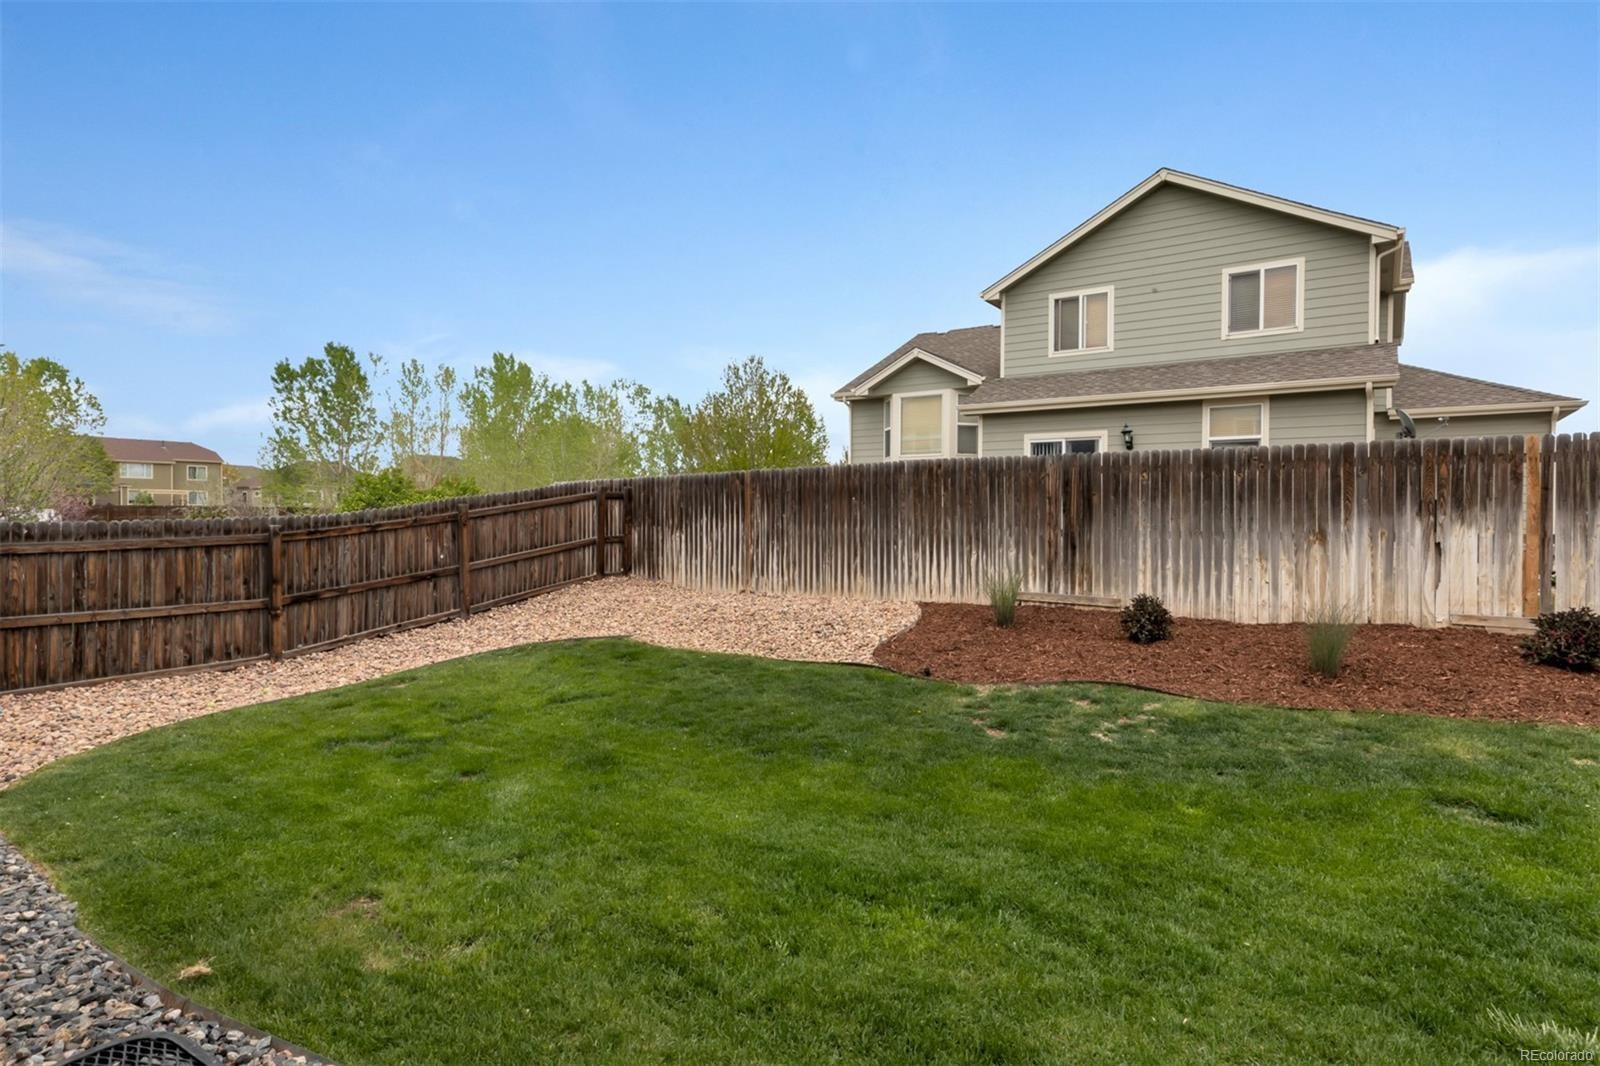 MLS# 3570514 - 10564  Ursula Street, Commerce City, CO 80022